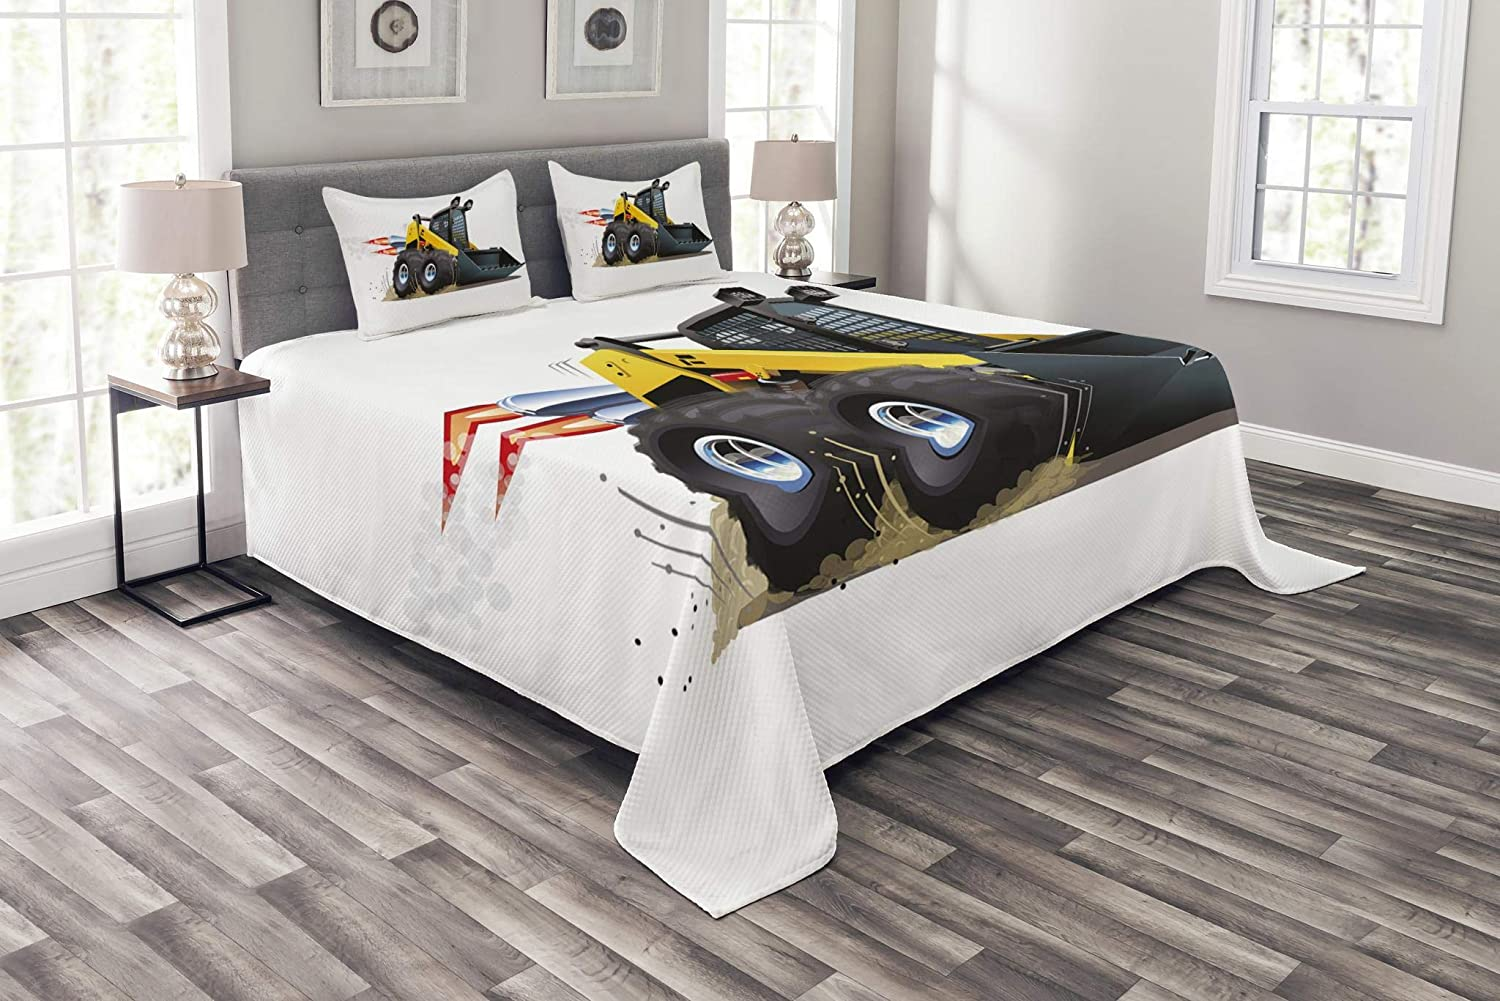 Lunarable Boy's Room Bedspread Set Twin Size, Cool Construction Vehicle Cartoon Bulldozer Skid Steer Nitro Speed Off Road, Decorative Quilted 2 Piece Coverlet Set Pillow Sham, Yellow Black bed_40636_twin